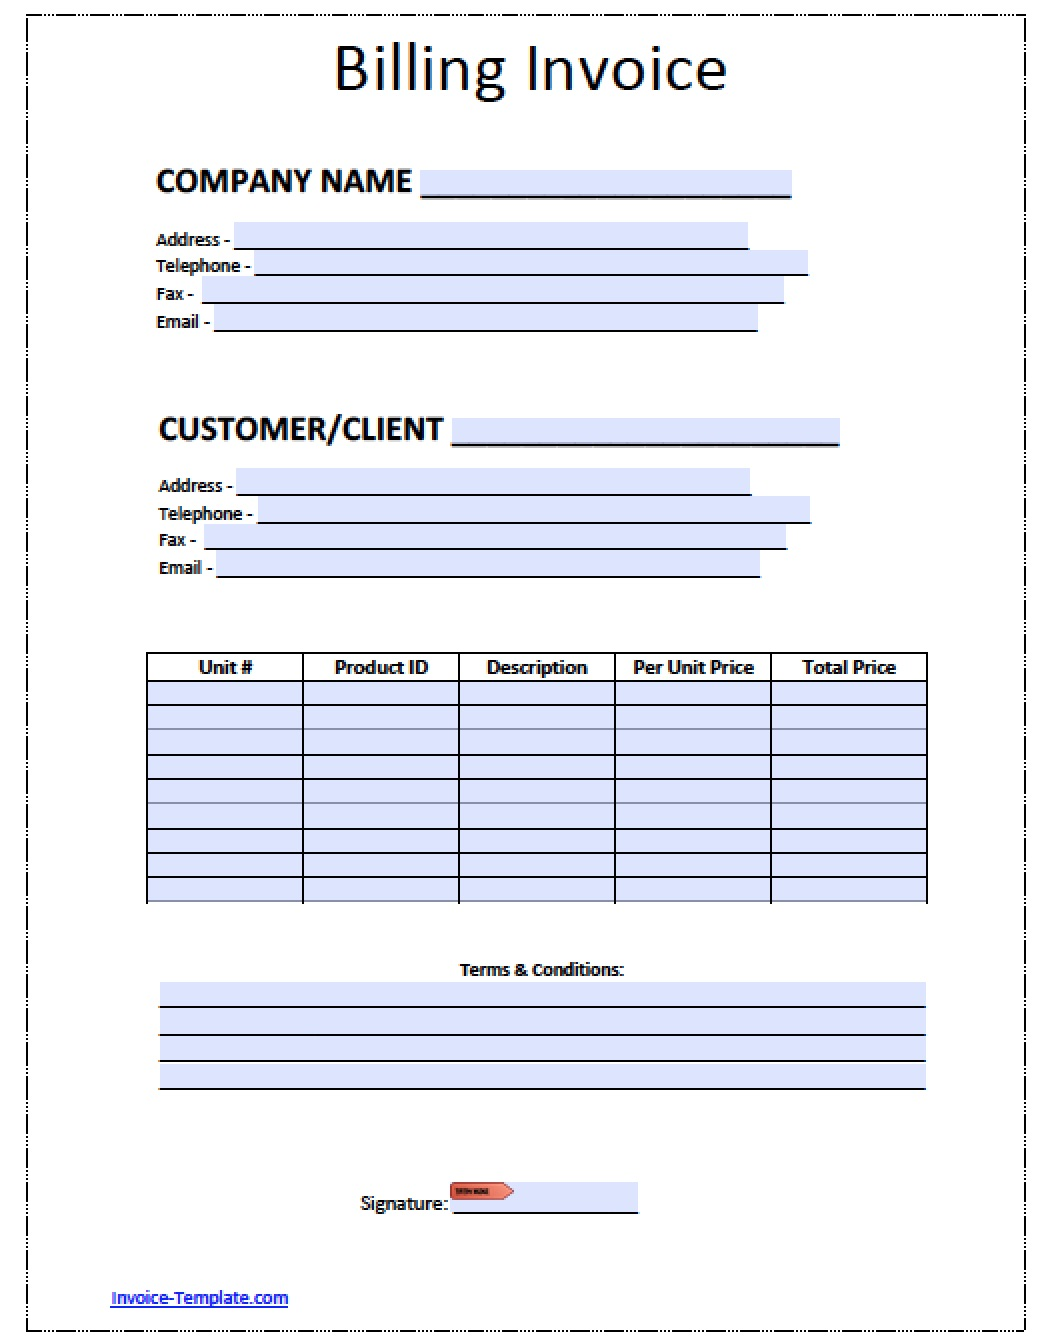 Free Blank Invoice Templates In PDF Word Excel - Construction invoice template word online clothing stores for men